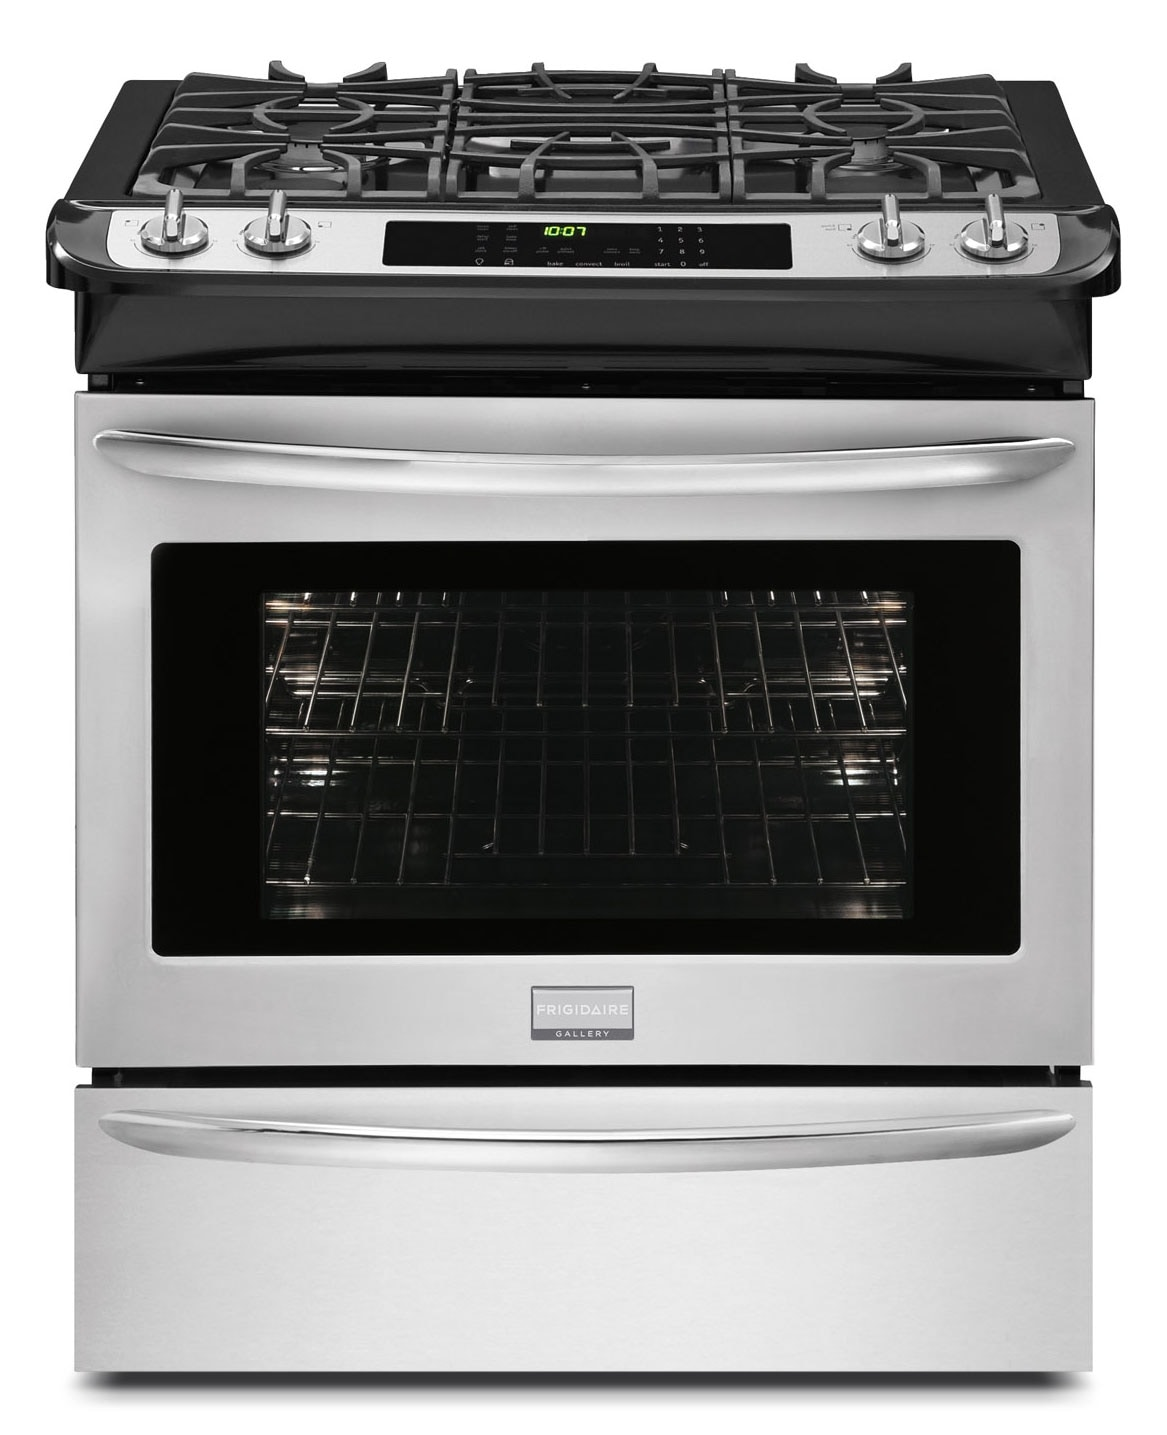 Frigidaire Gallery Slide-In Dual Fuel Convection Range (4.6 Cu. Ft.) - CGDS3065PF